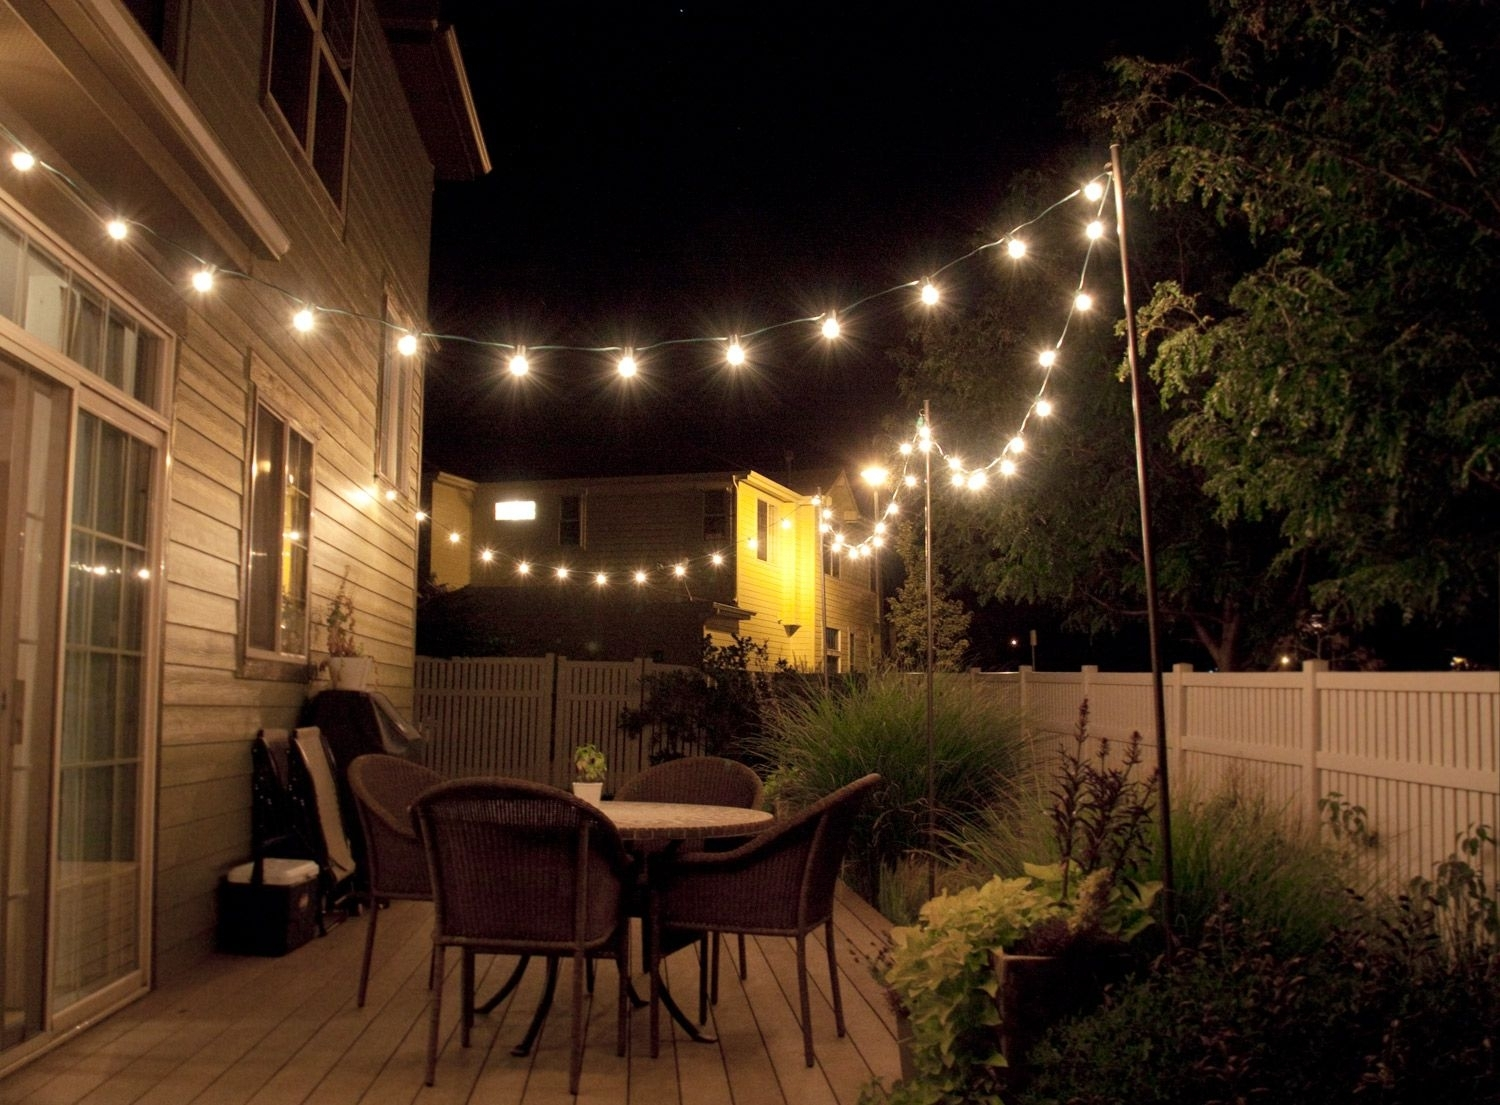 How To Make Inexpensive Poles To Hang String Lights On – Café Style Intended For Hanging Outdoor Lights In Backyard (#11 of 15)